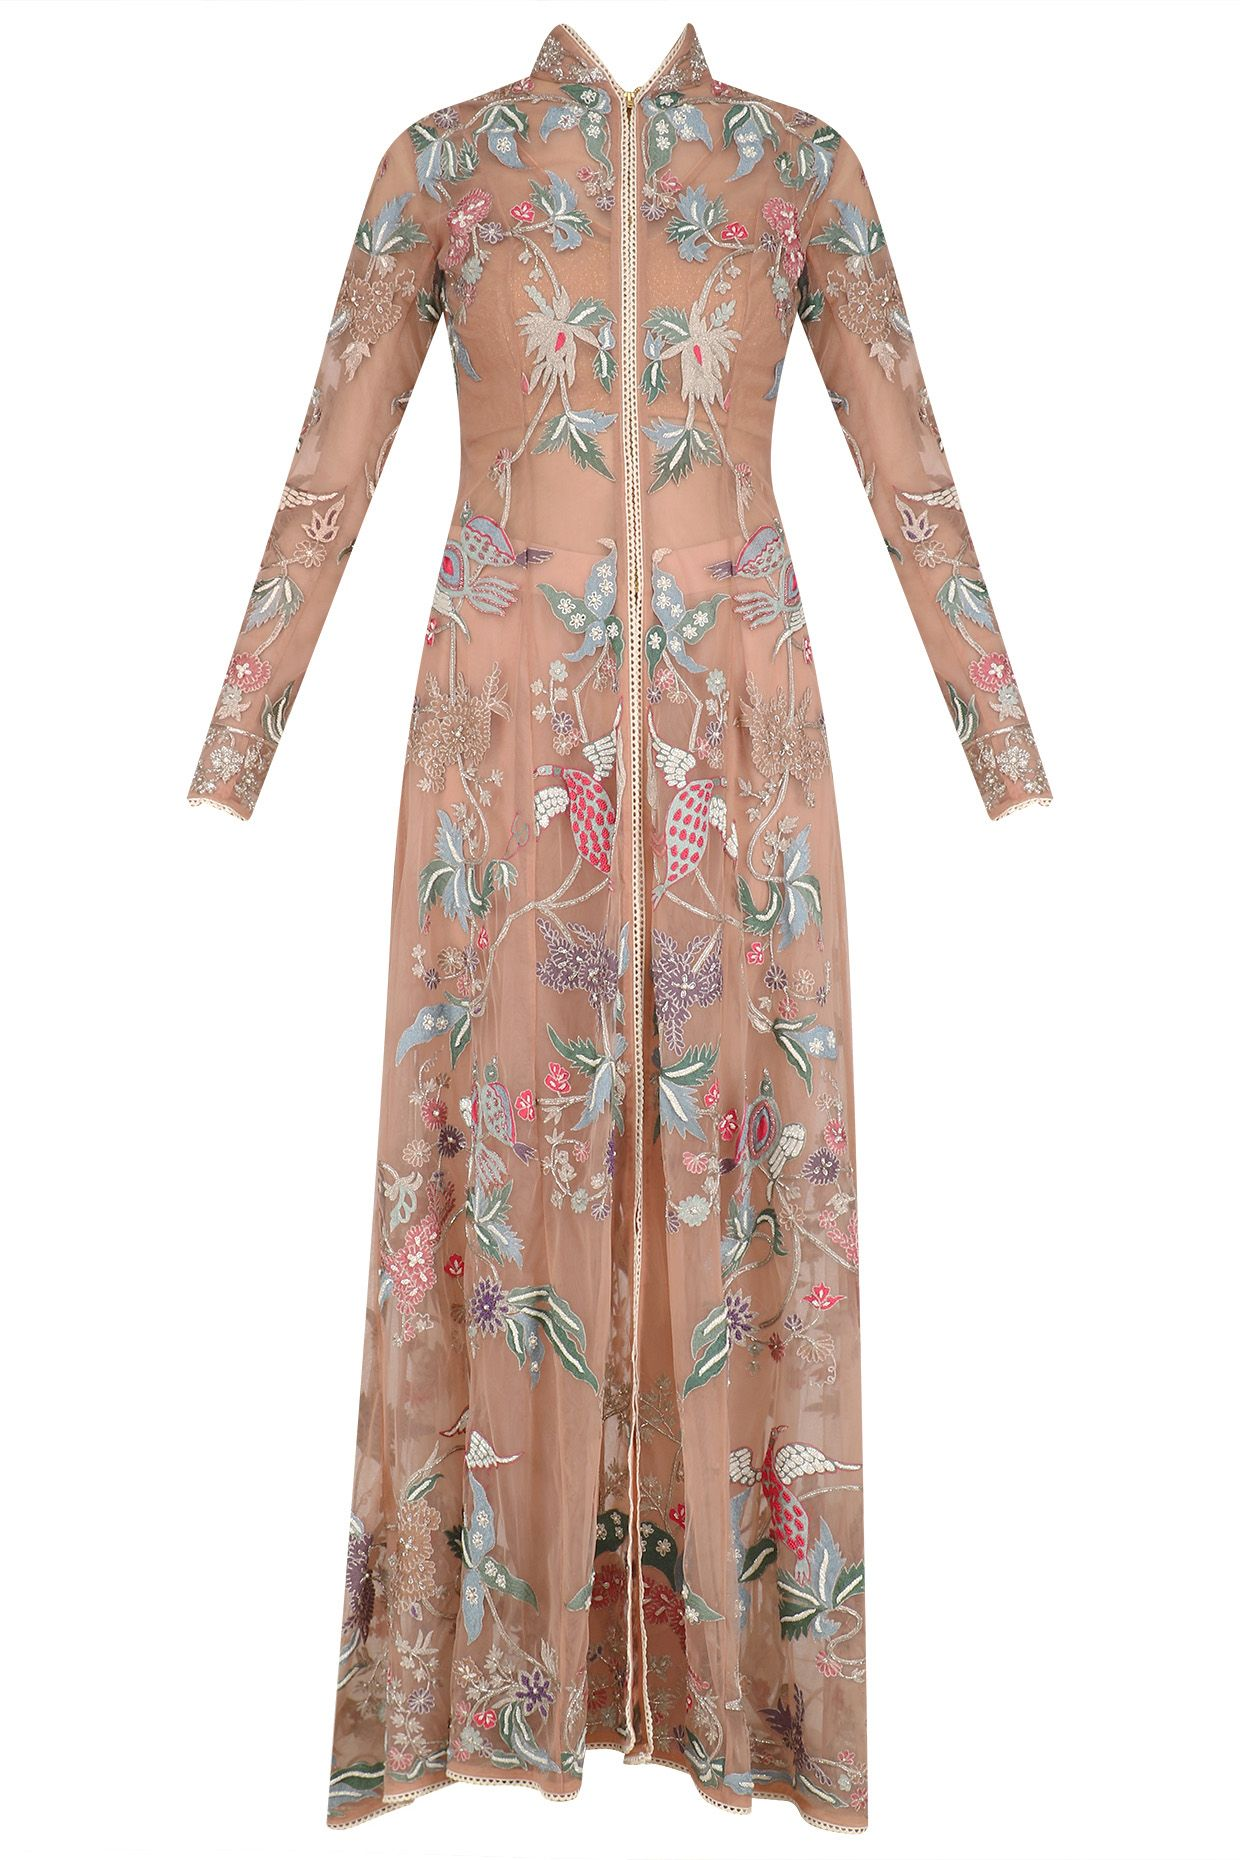 a9bc5f544 Old rose embroidered long jacket, dhoti pants and blouse set available only  at Pernia's Pop Up Shop.